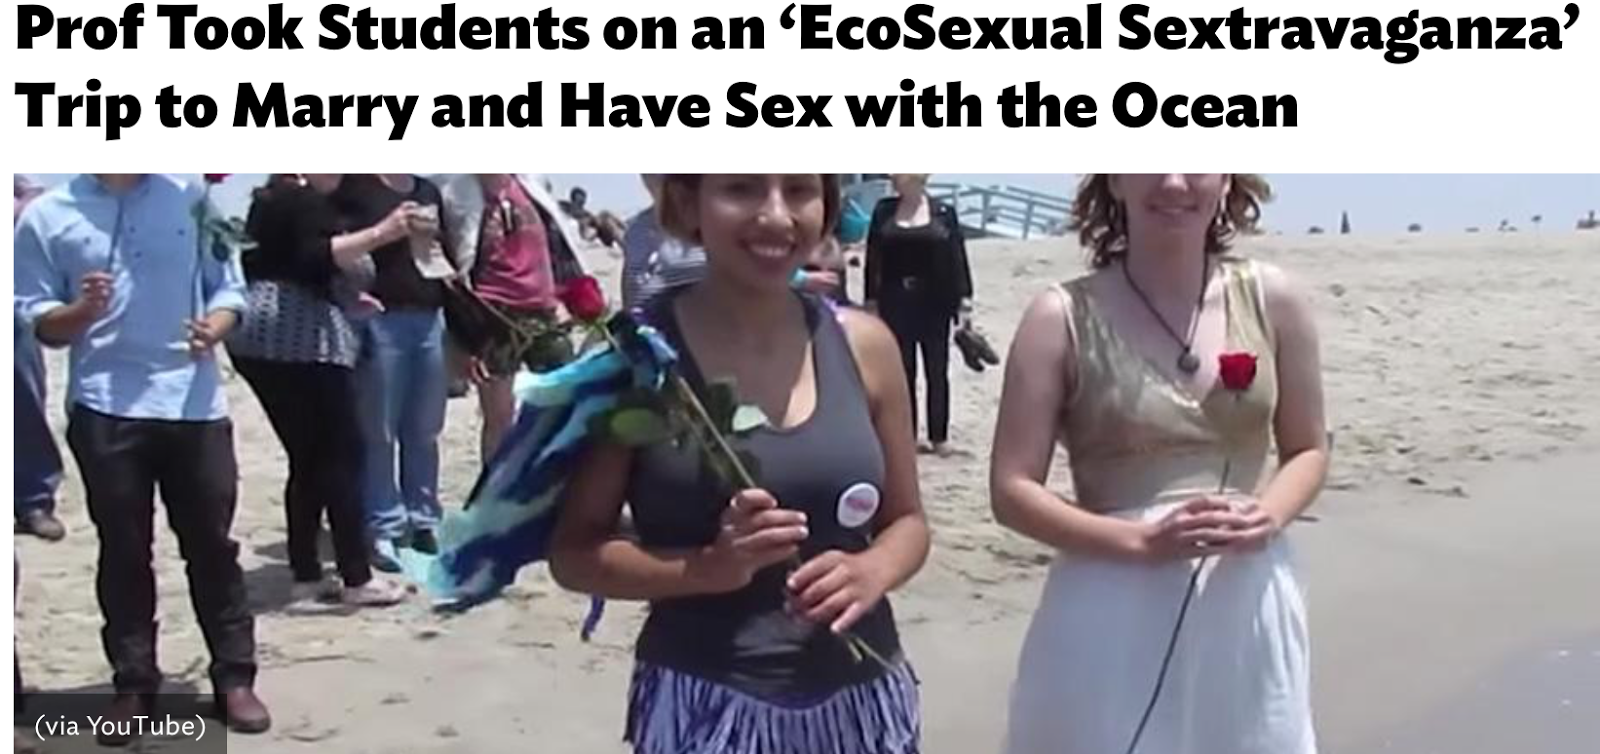 Ecosexual youtube